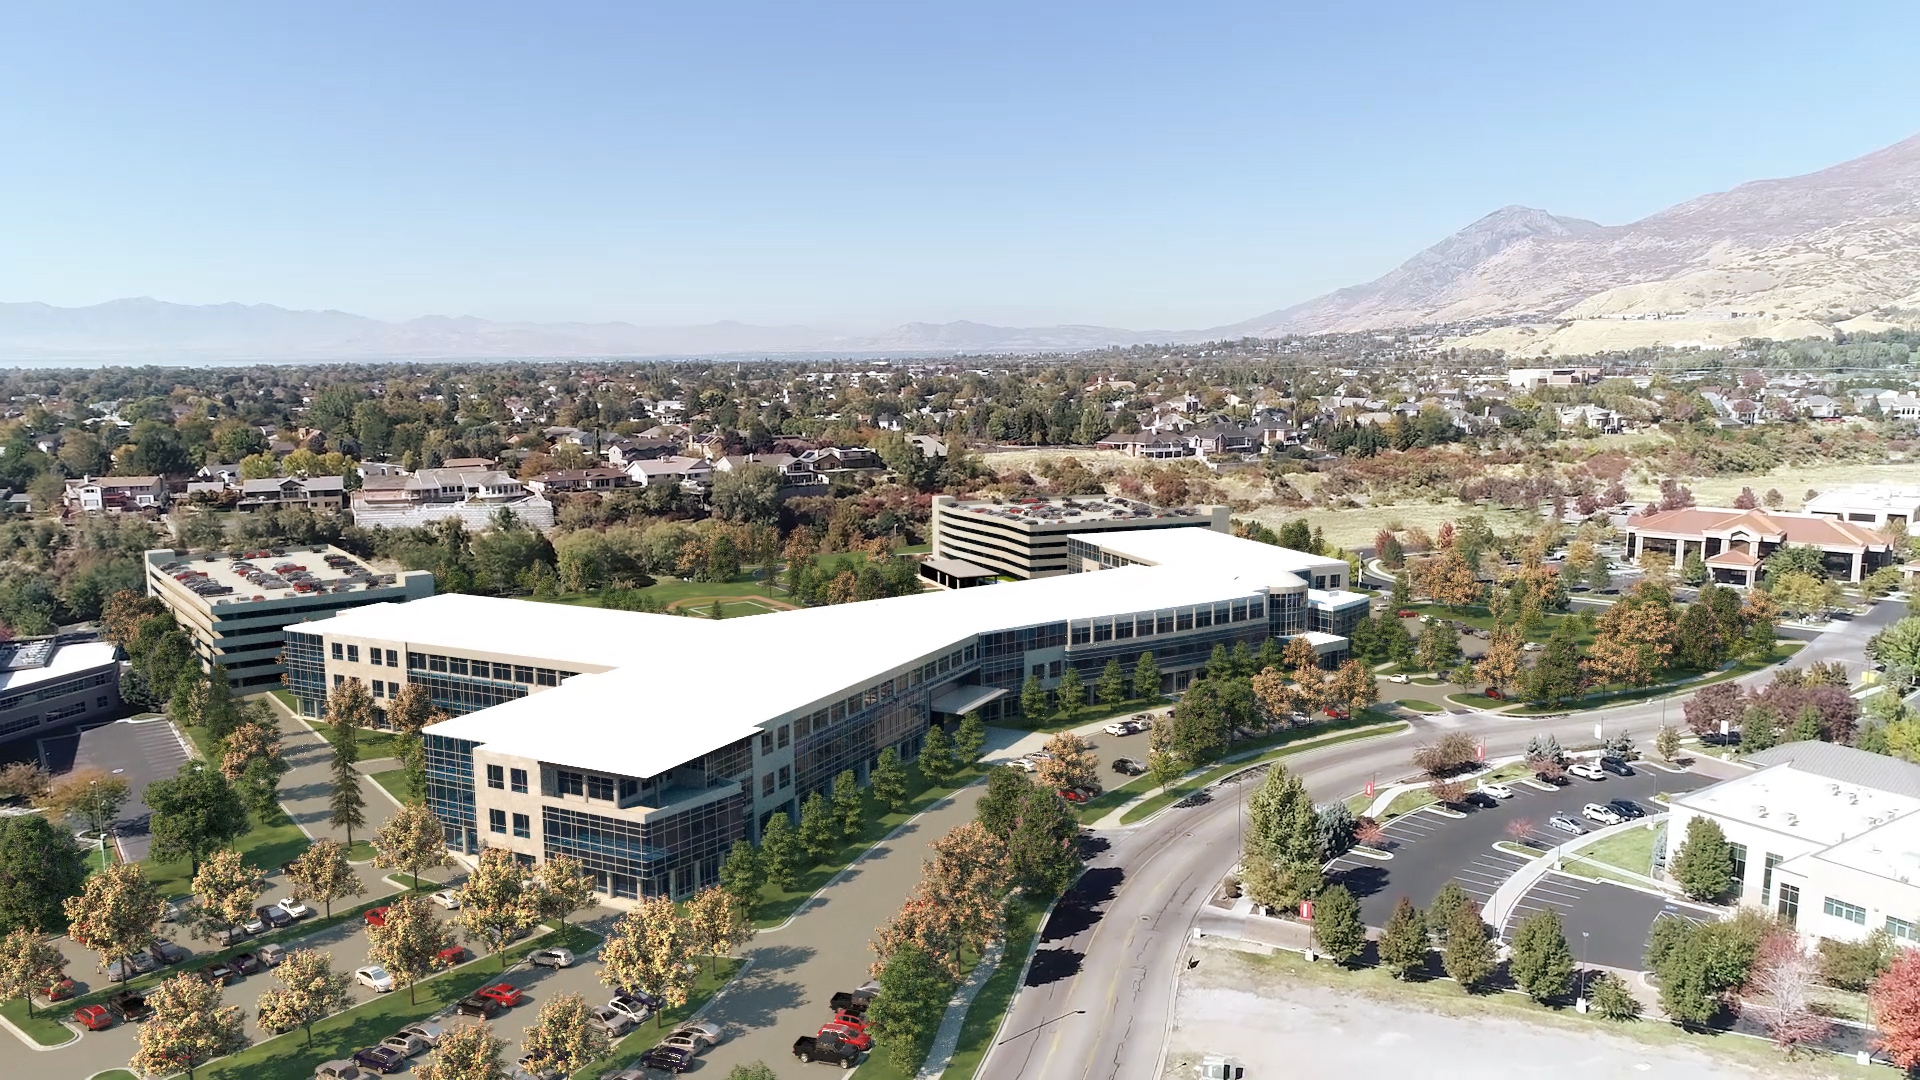 Utah customer experience giant Qualtrics announced plans on Thursday, Nov. 21, 2019, to double its existing Provo headquarters and add an additional 1,000-plus jobs. The company has wider plans in place to more than double its global workforce to 8,000 in the next five years.